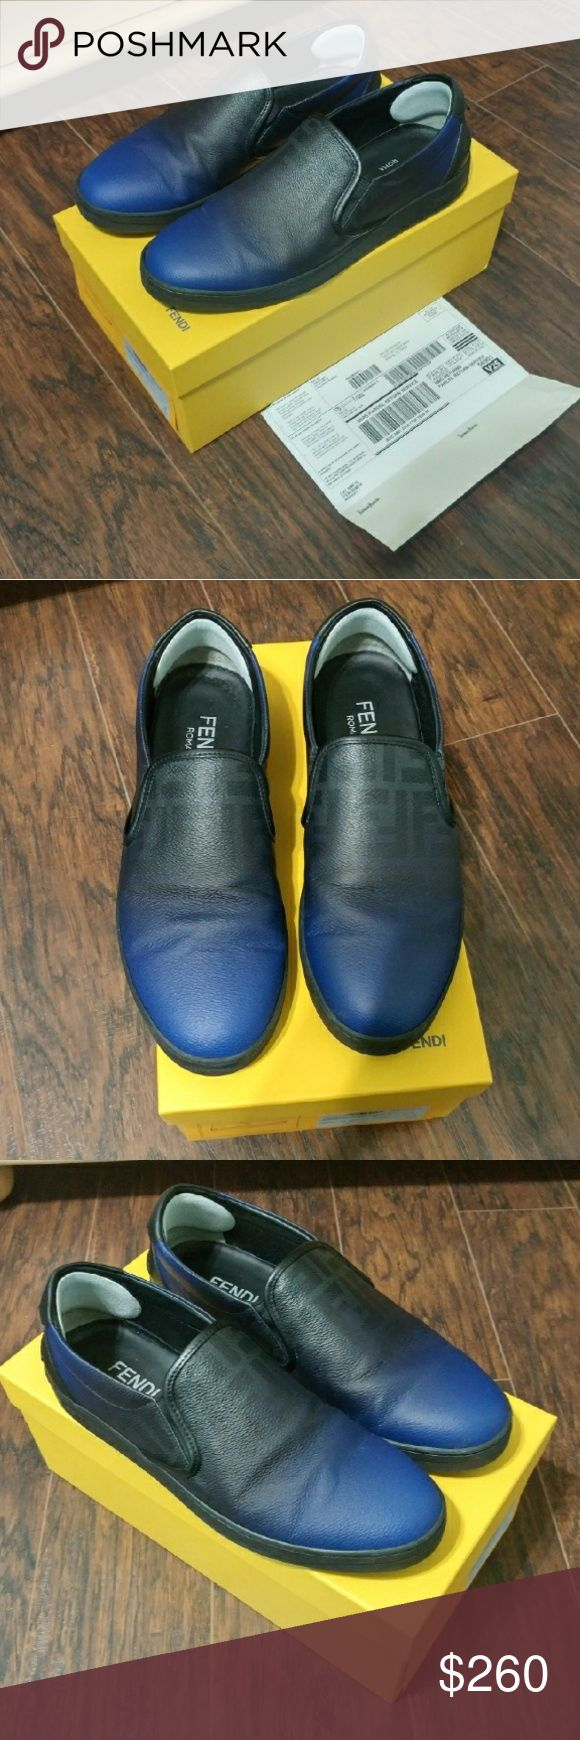 Fendi zucca ombre leather slip on loafer 100% Authentic with receipt comes with original box   Paid $455 plus tax at neiman marcus  Located in fort worth  I will consider reasonable offer please text  817676412three Fendi Shoes Loafers & Slip-Ons